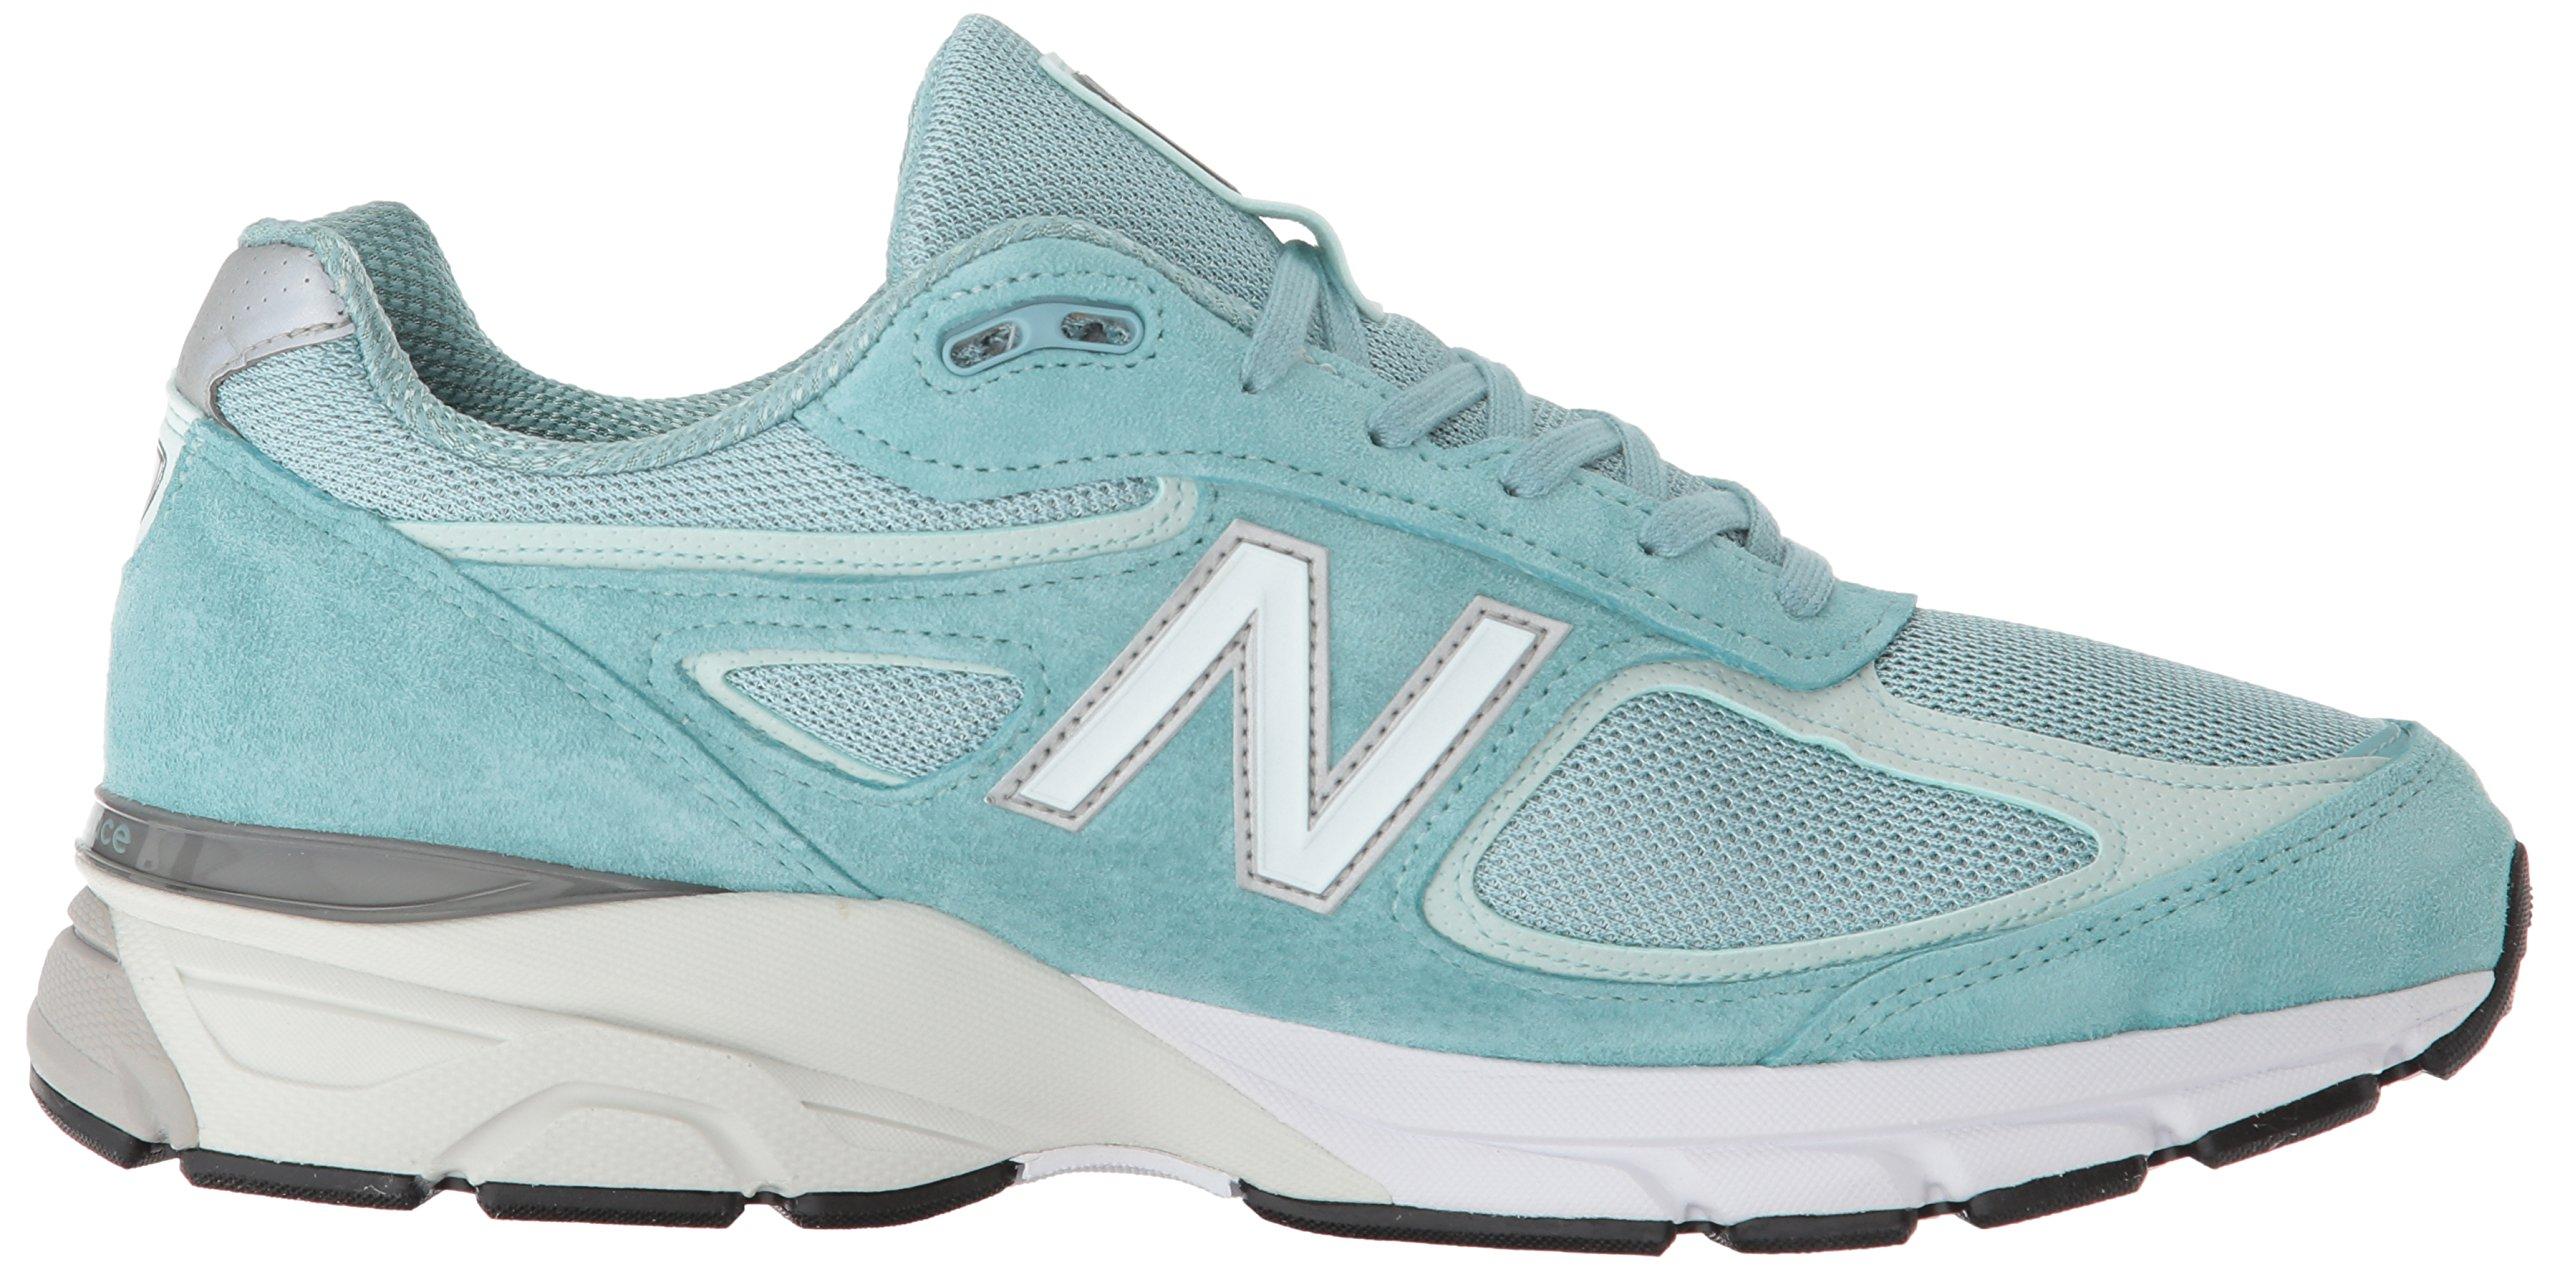 New Balance Men's 990v4, Green/White, 7 D US by New Balance (Image #7)